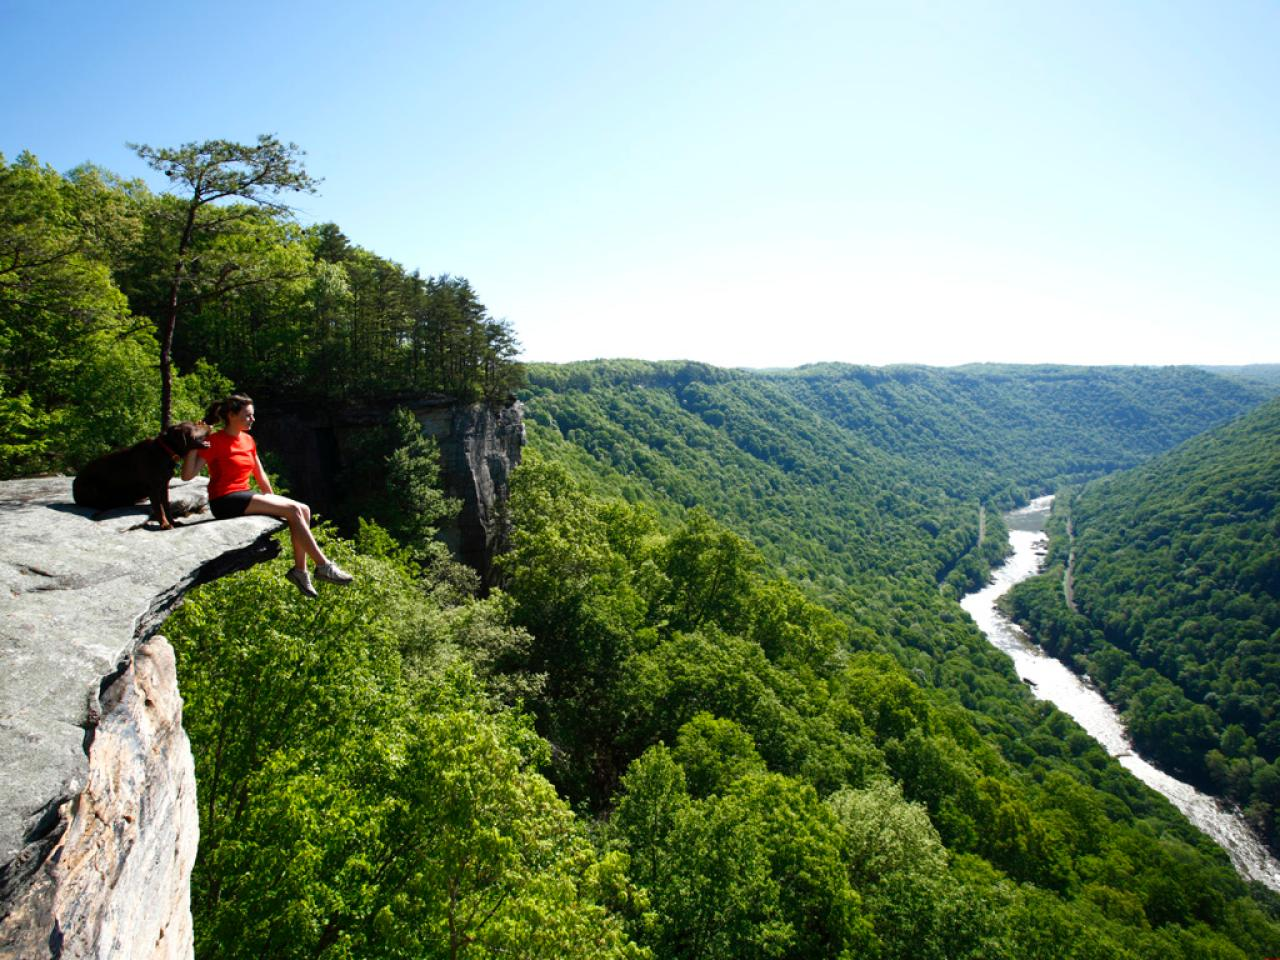 Adventure Travel Trip in West Virginia's River